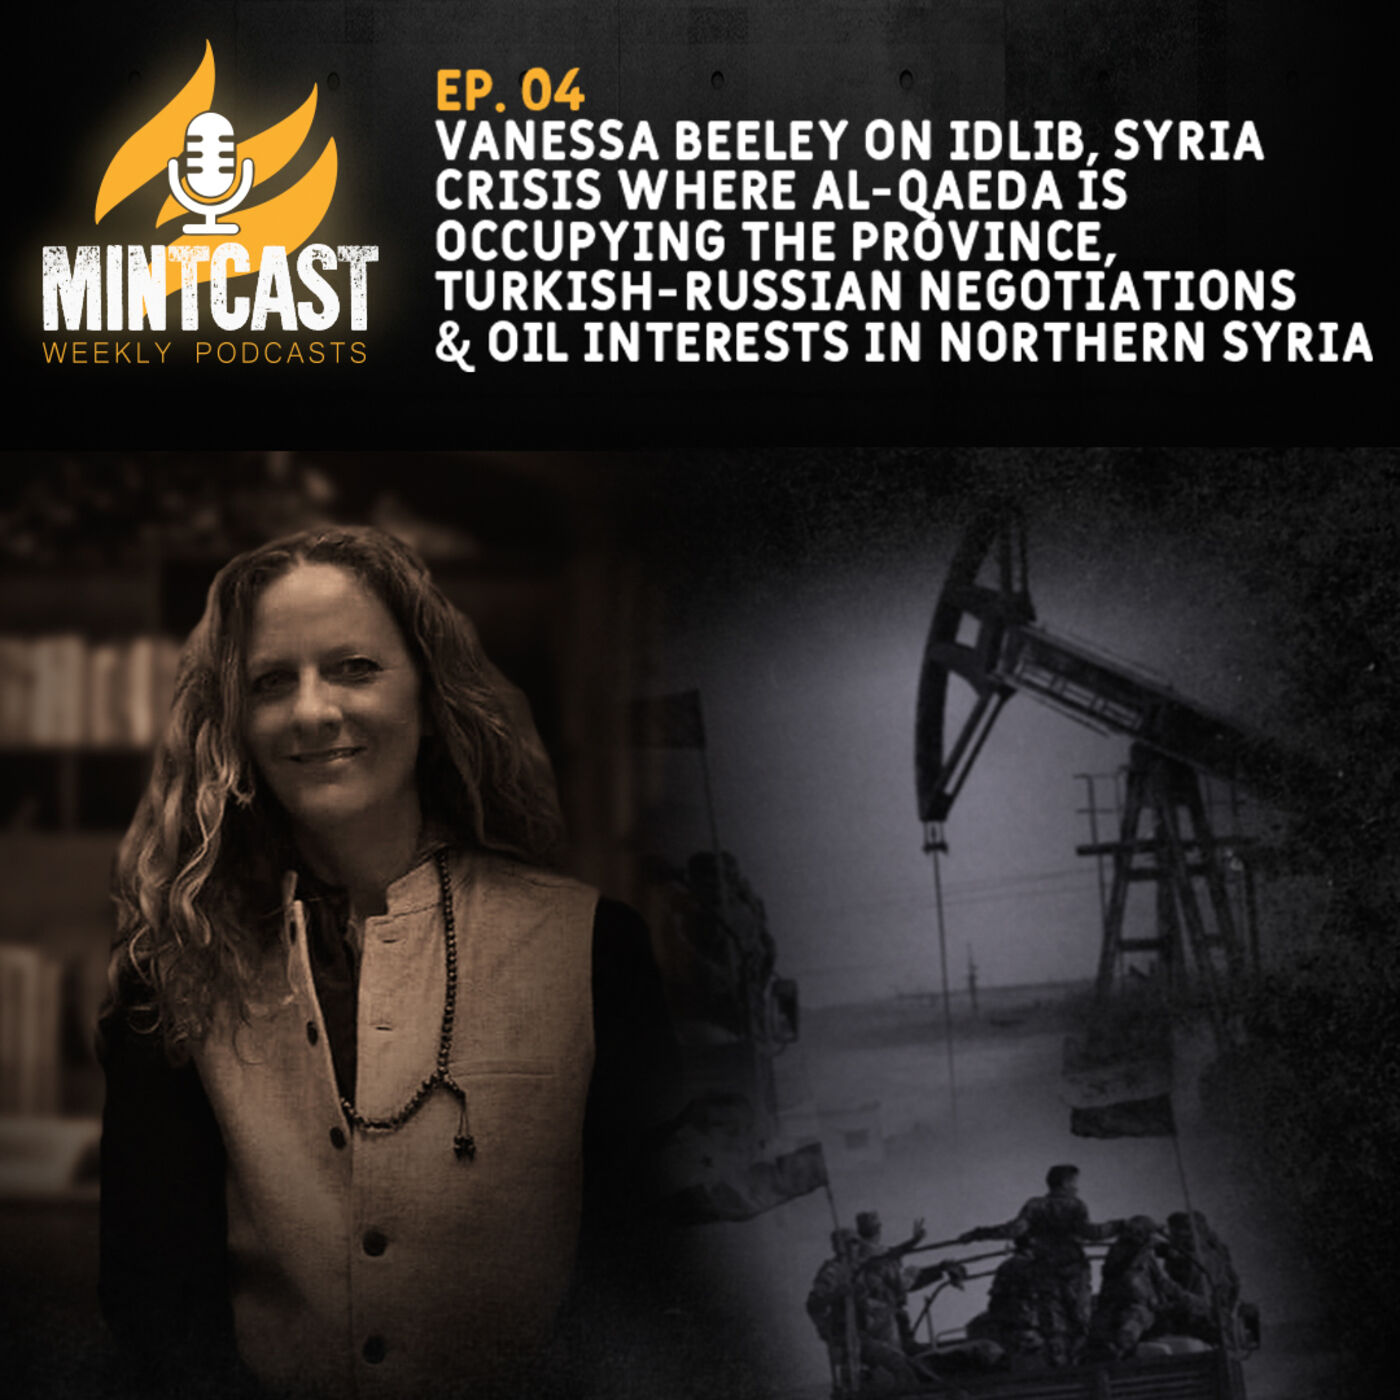 Vanessa Beeley Unpacks the Crisis in Idlib and the Fight for Syria's Oil, Gas and Water